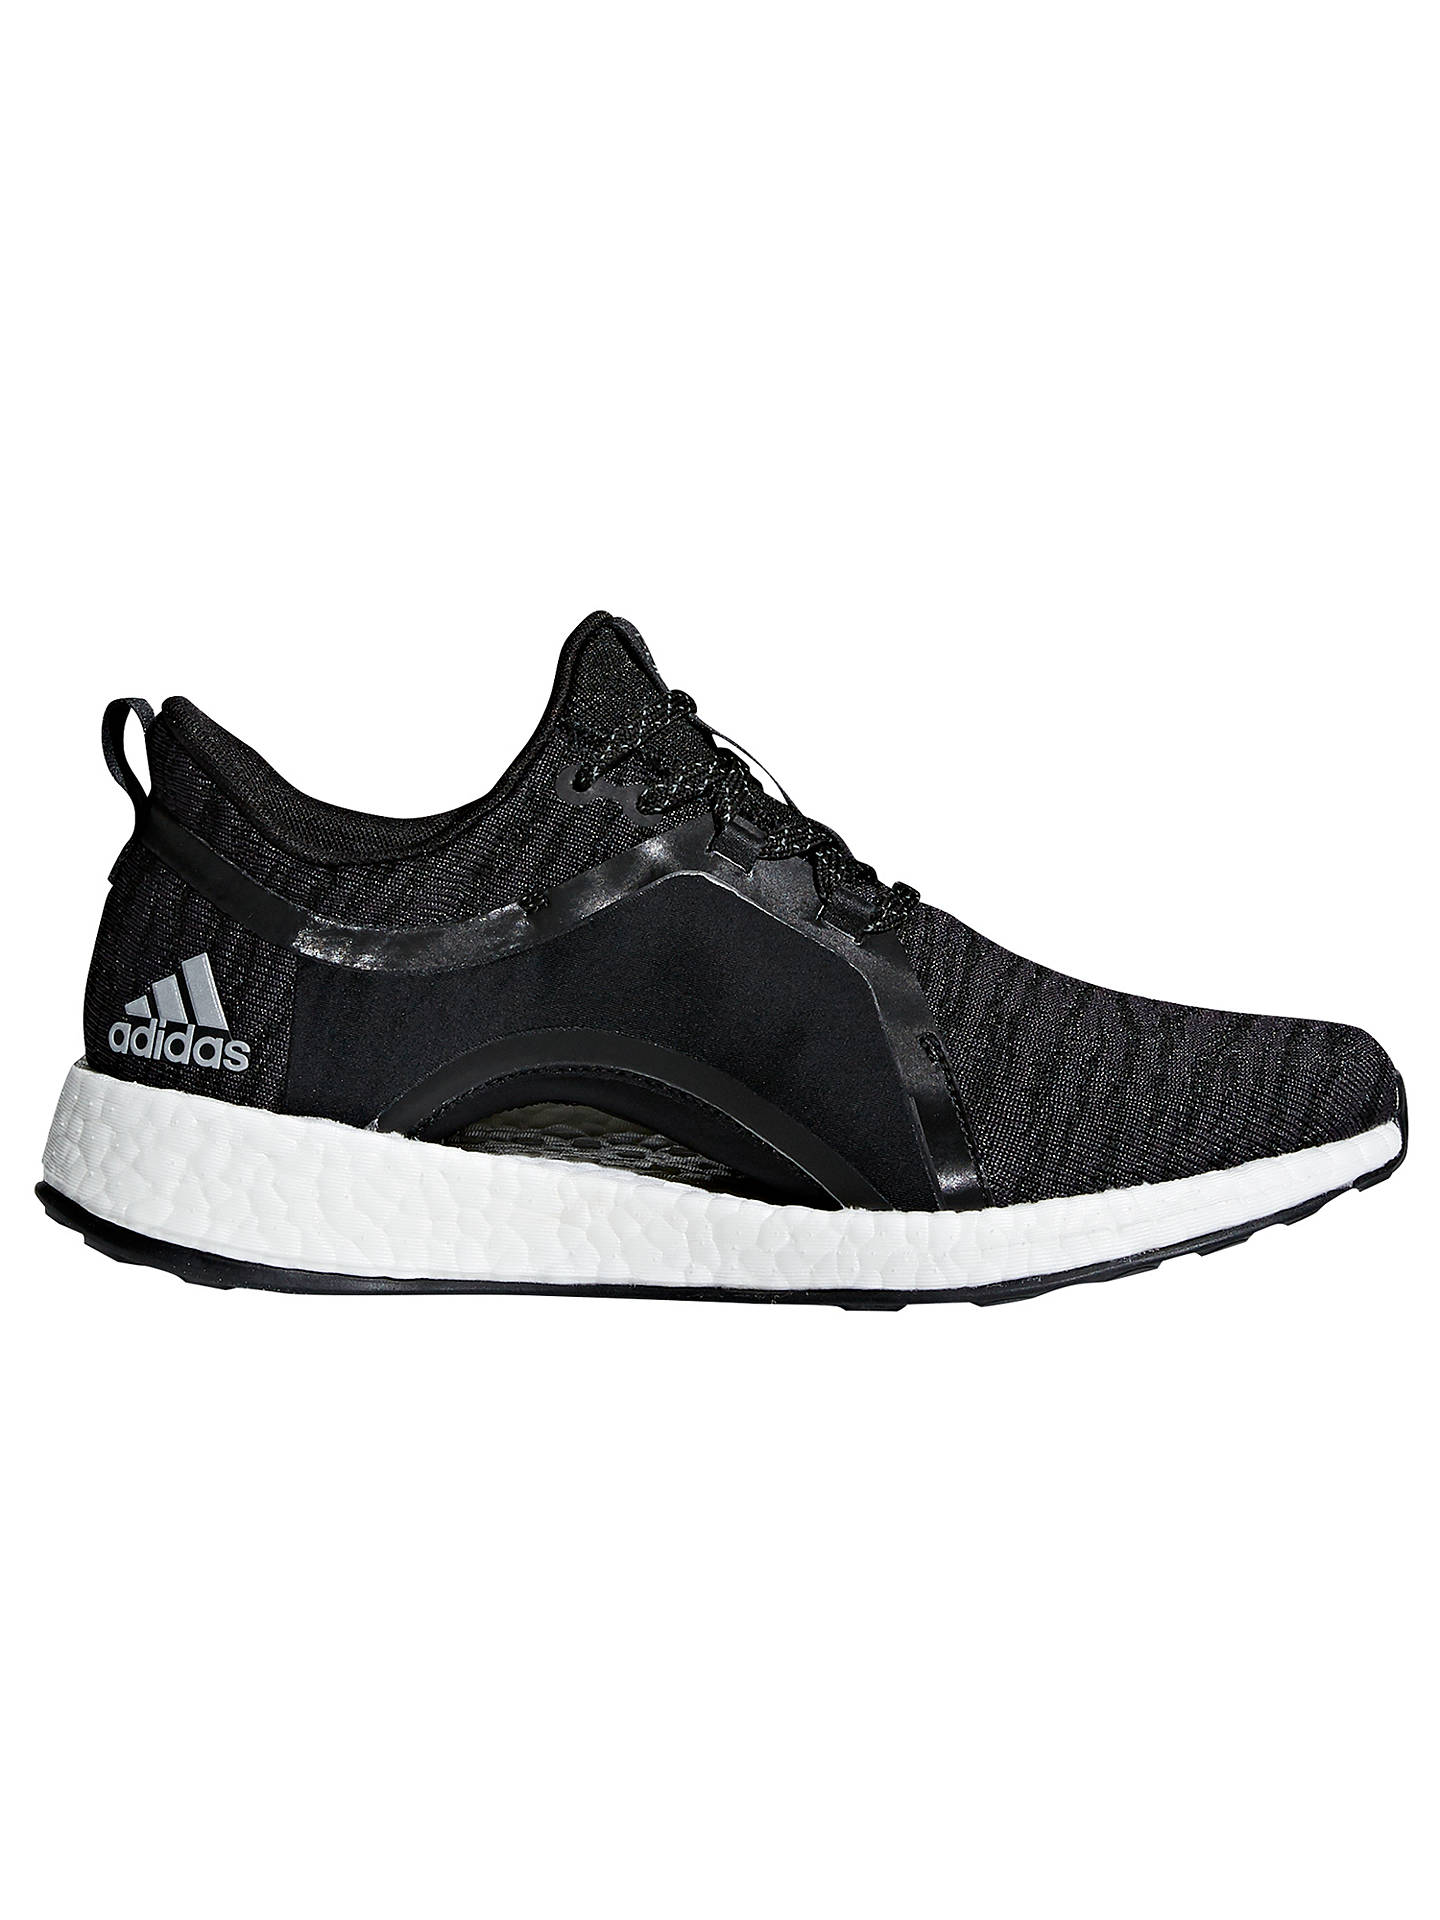 06b03cd8e Buy adidas Pure Boost X Women s Running Shoes